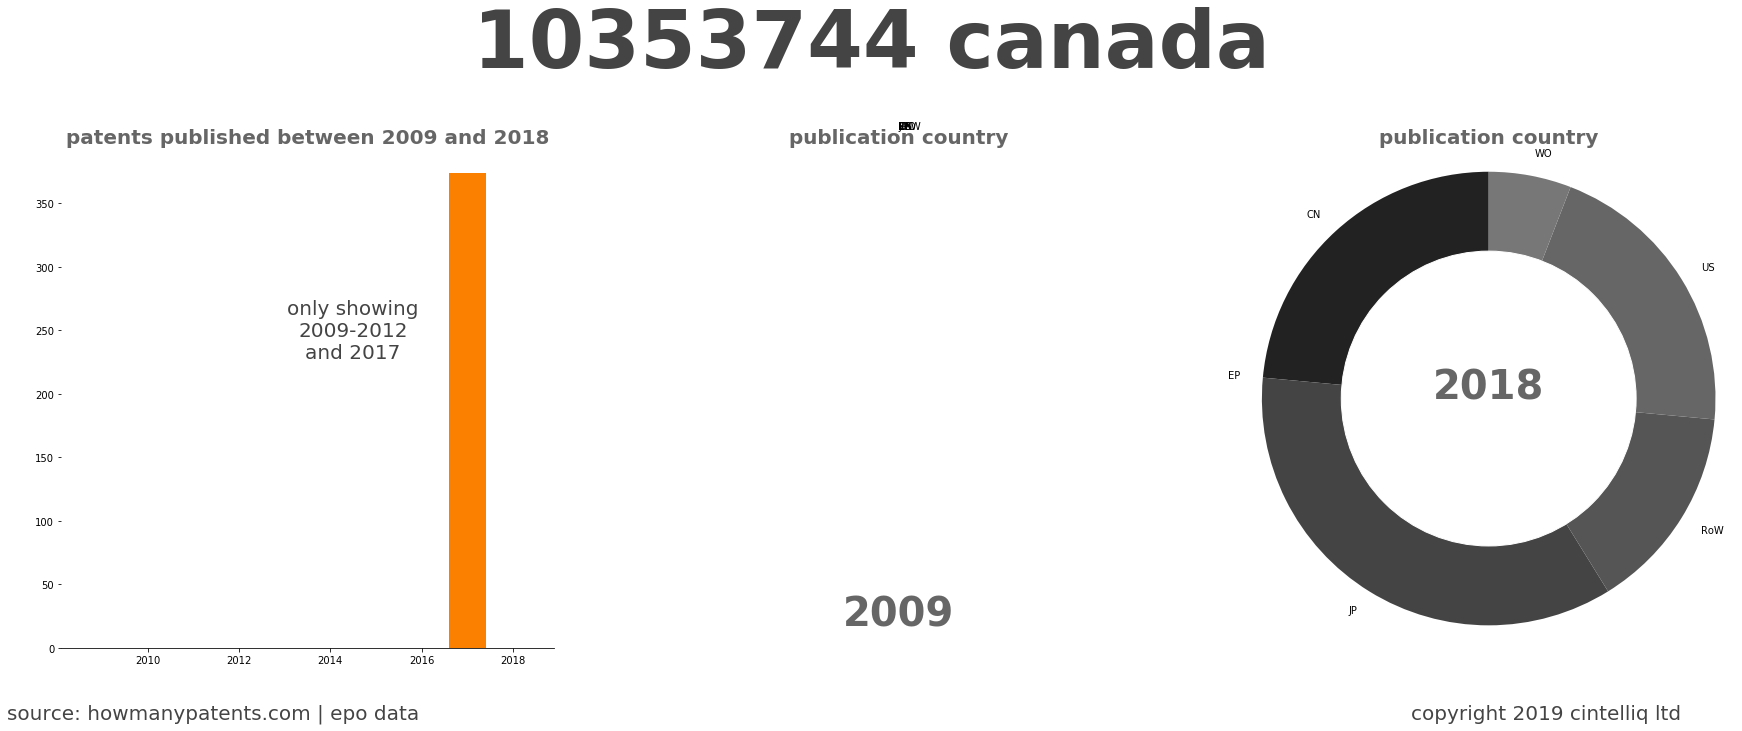 summary of patents for 10353744 Canada